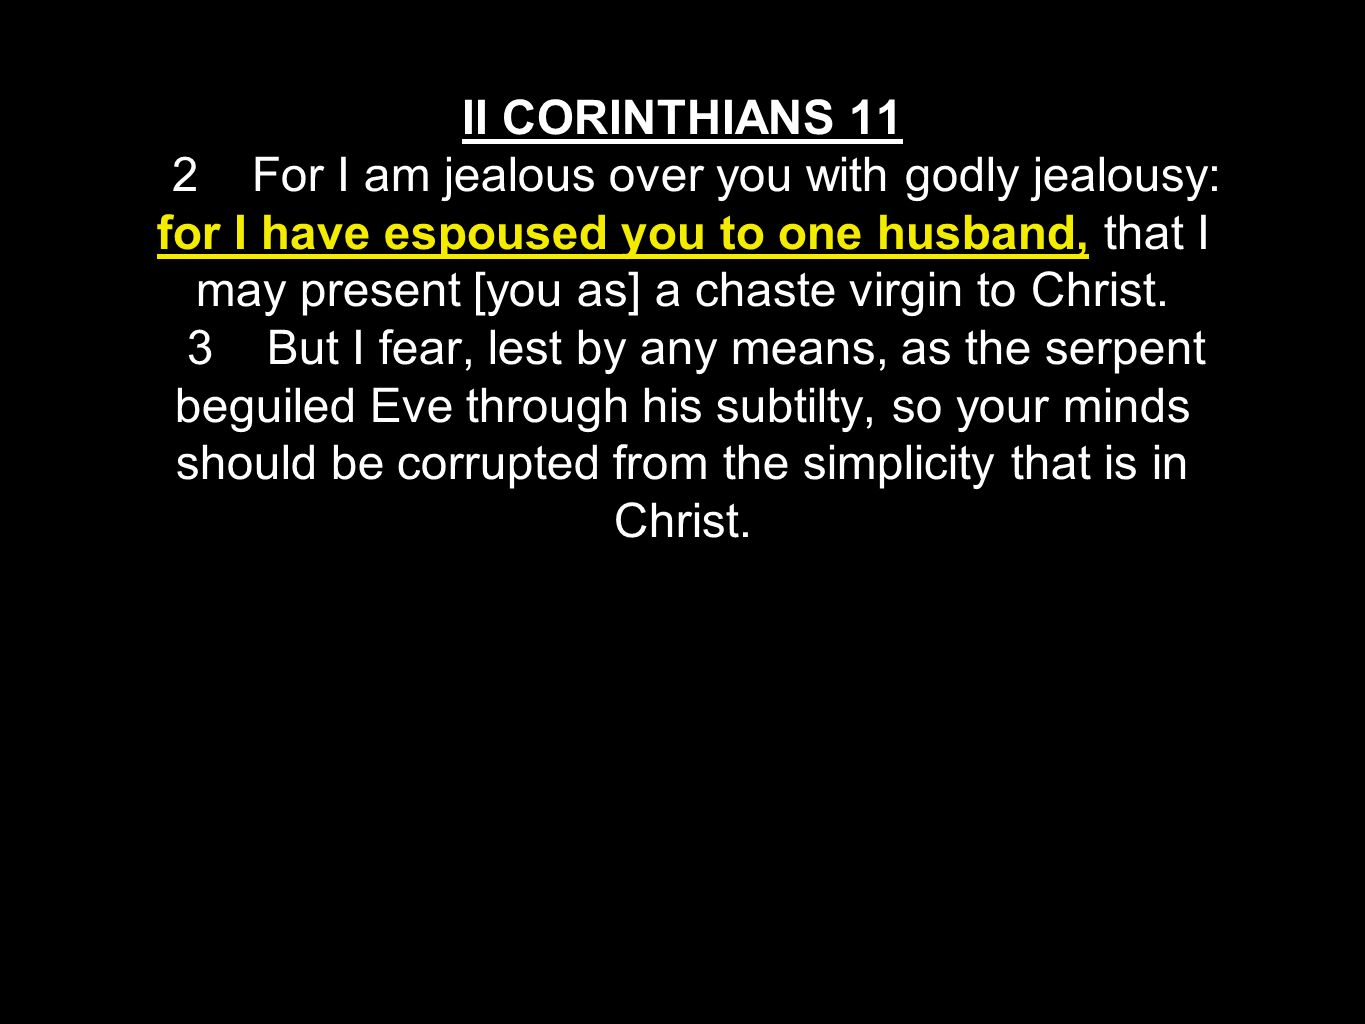 II CORINTHIANS 11 2 For I am jealous over you with godly jealousy: for I have espoused you to one husband, that I may present [you as] a chaste virgin to Christ.